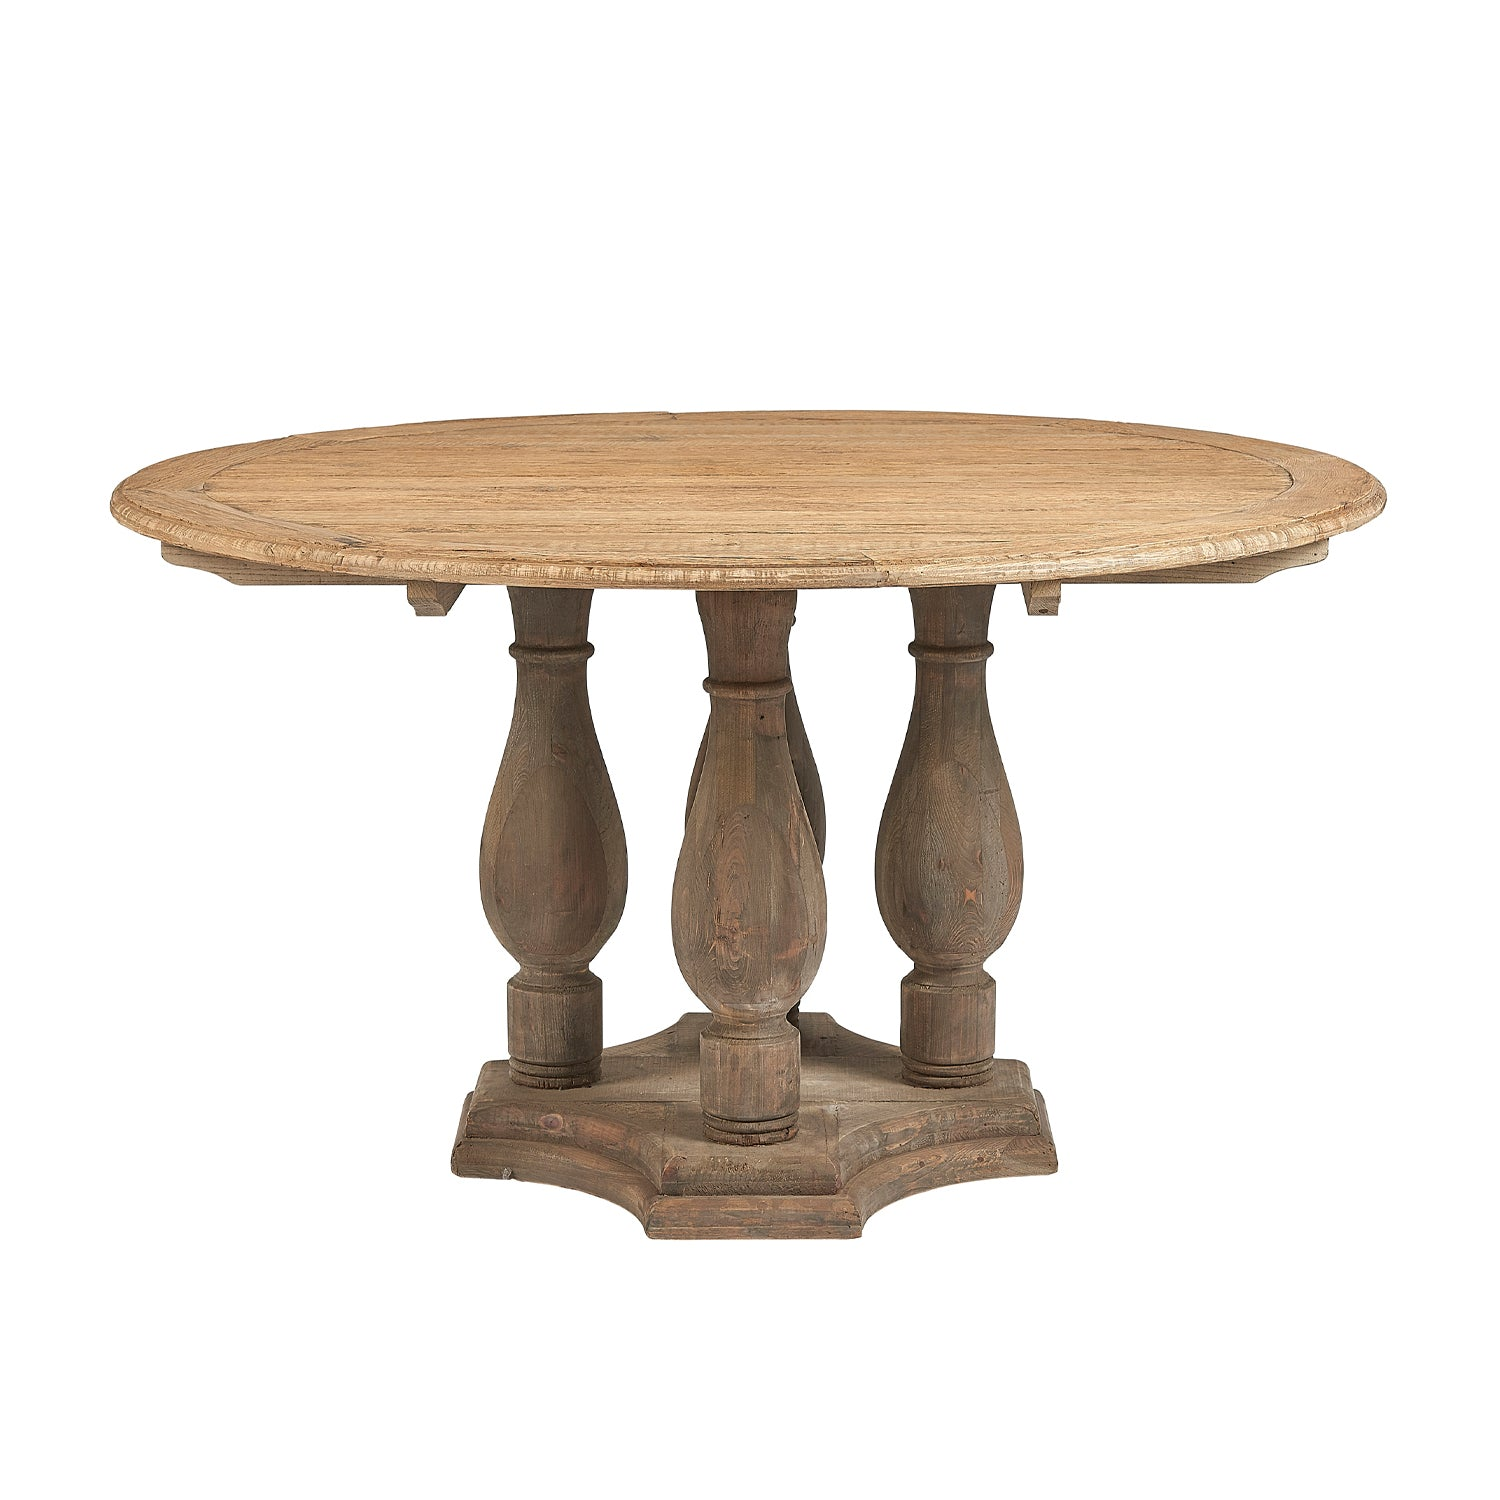 Lambs Green - Reclaimed Elm Round Dining Table with Pedestals